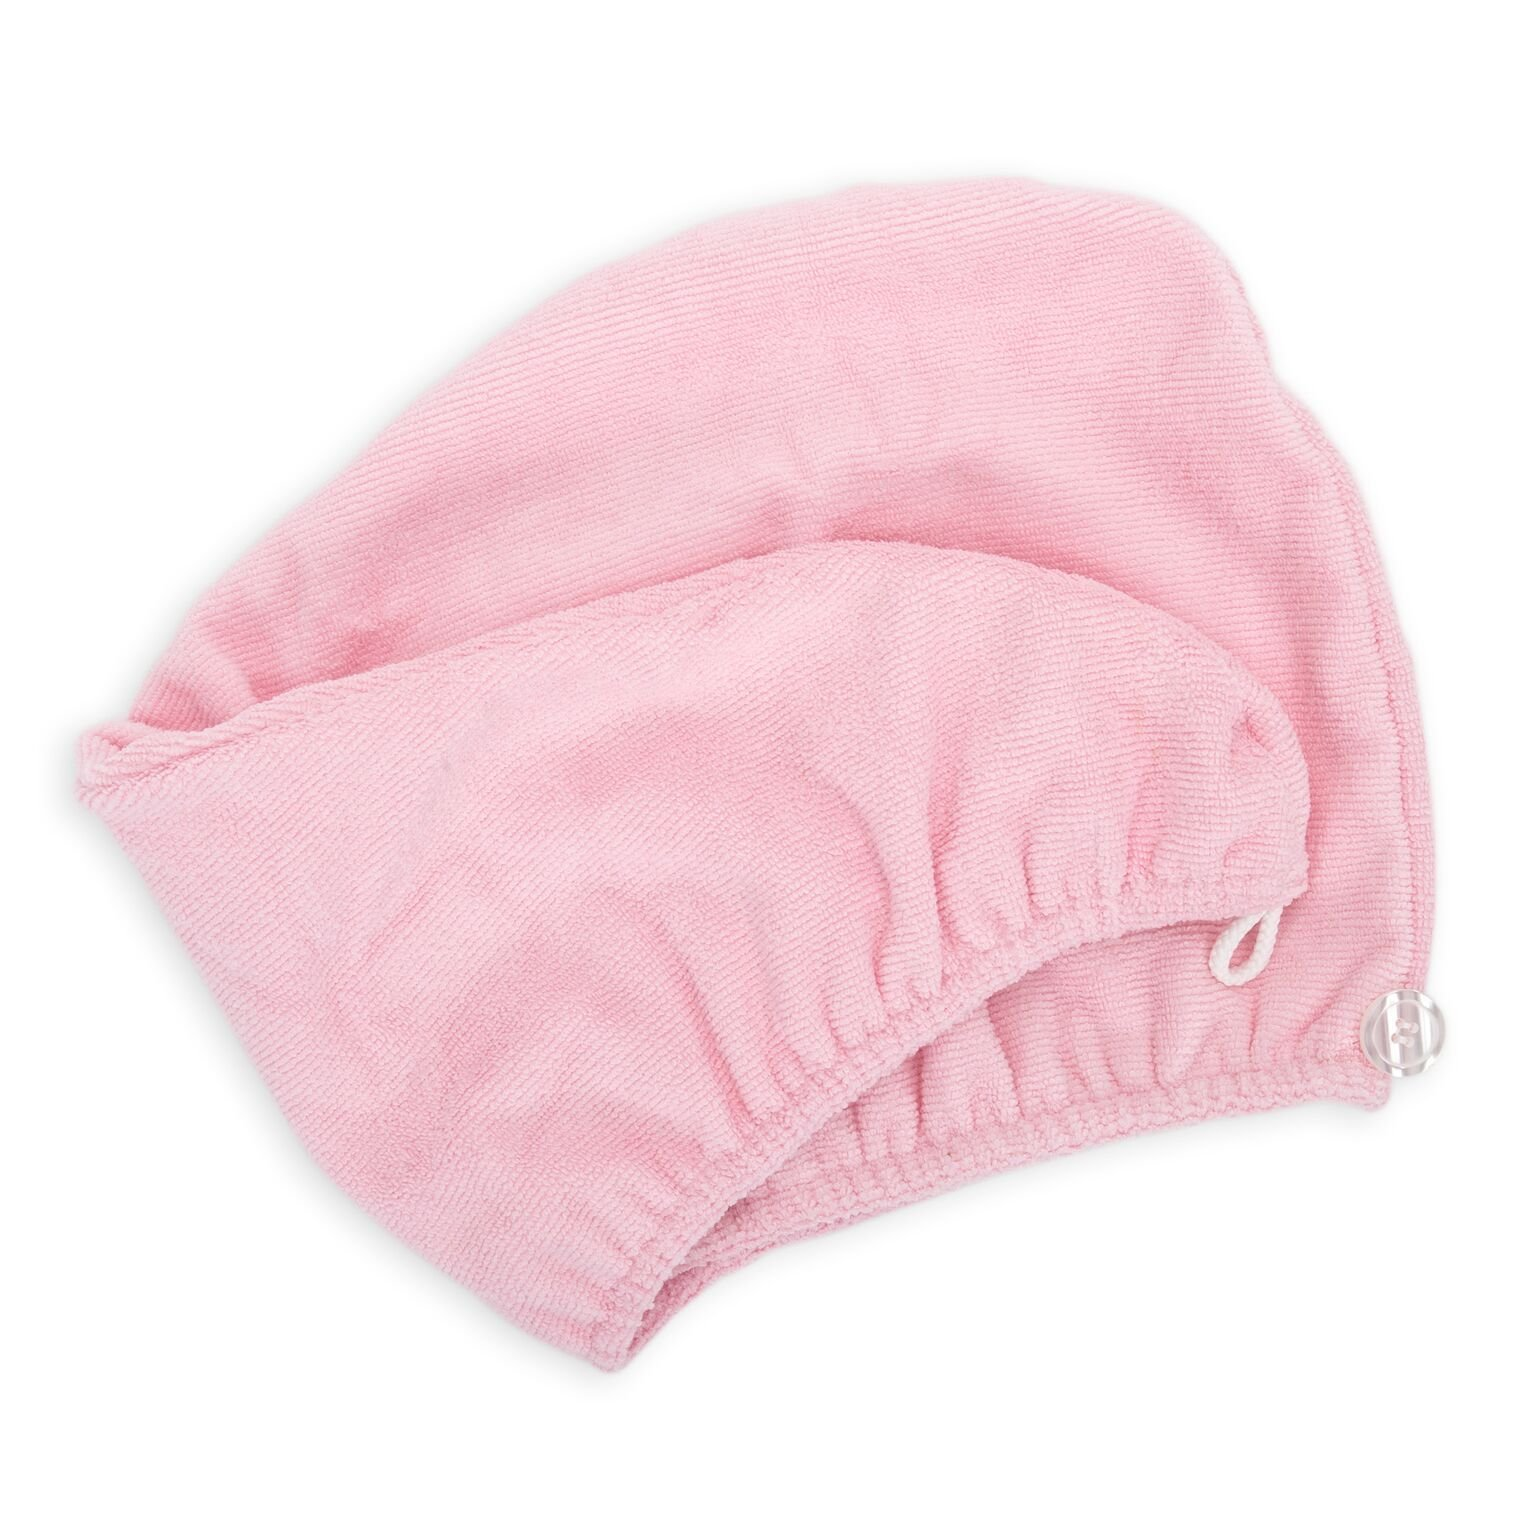 Diva Darling, Easy to Use & Super Absorbent Microfiber Hair Turban, Pink